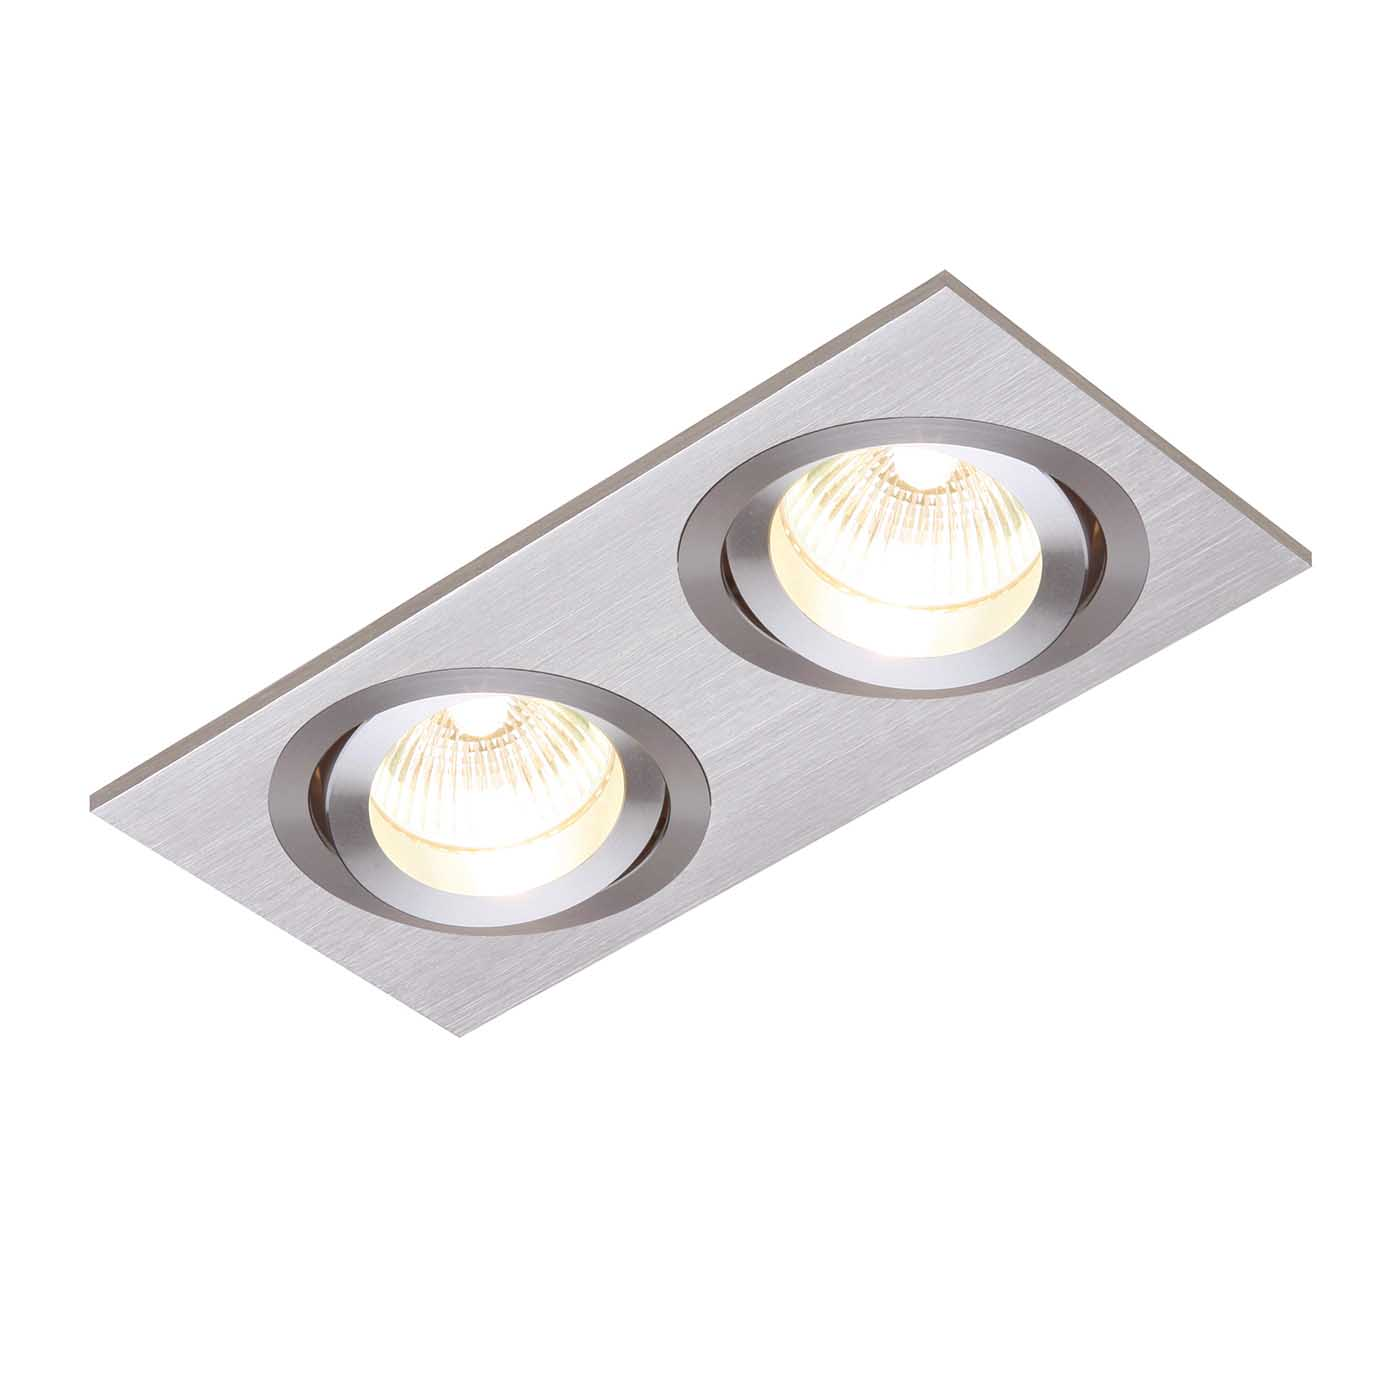 Saxby Tetra Indoor Recessed Tilt Light Brushed Silver Anodised 2x50W GU10 Thumbnail 1